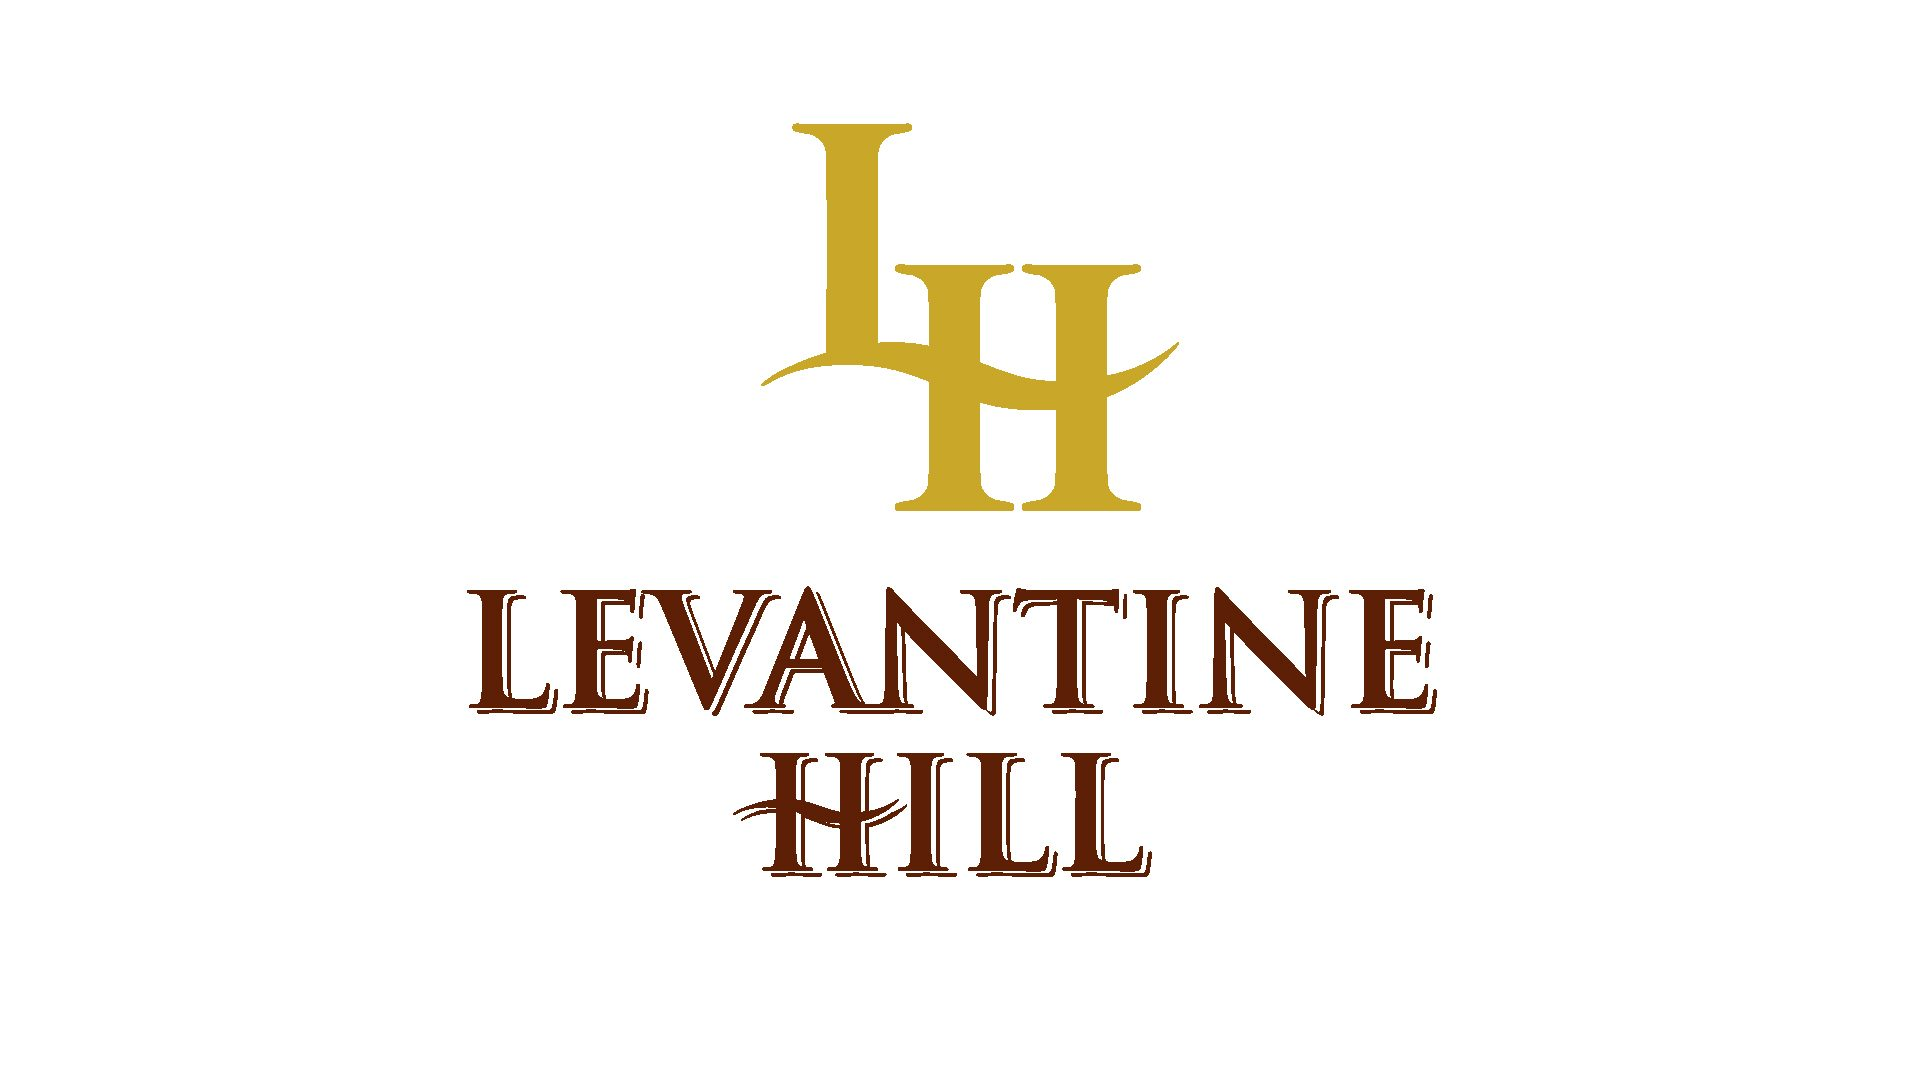 The Creative Parrot - Levantine Hill